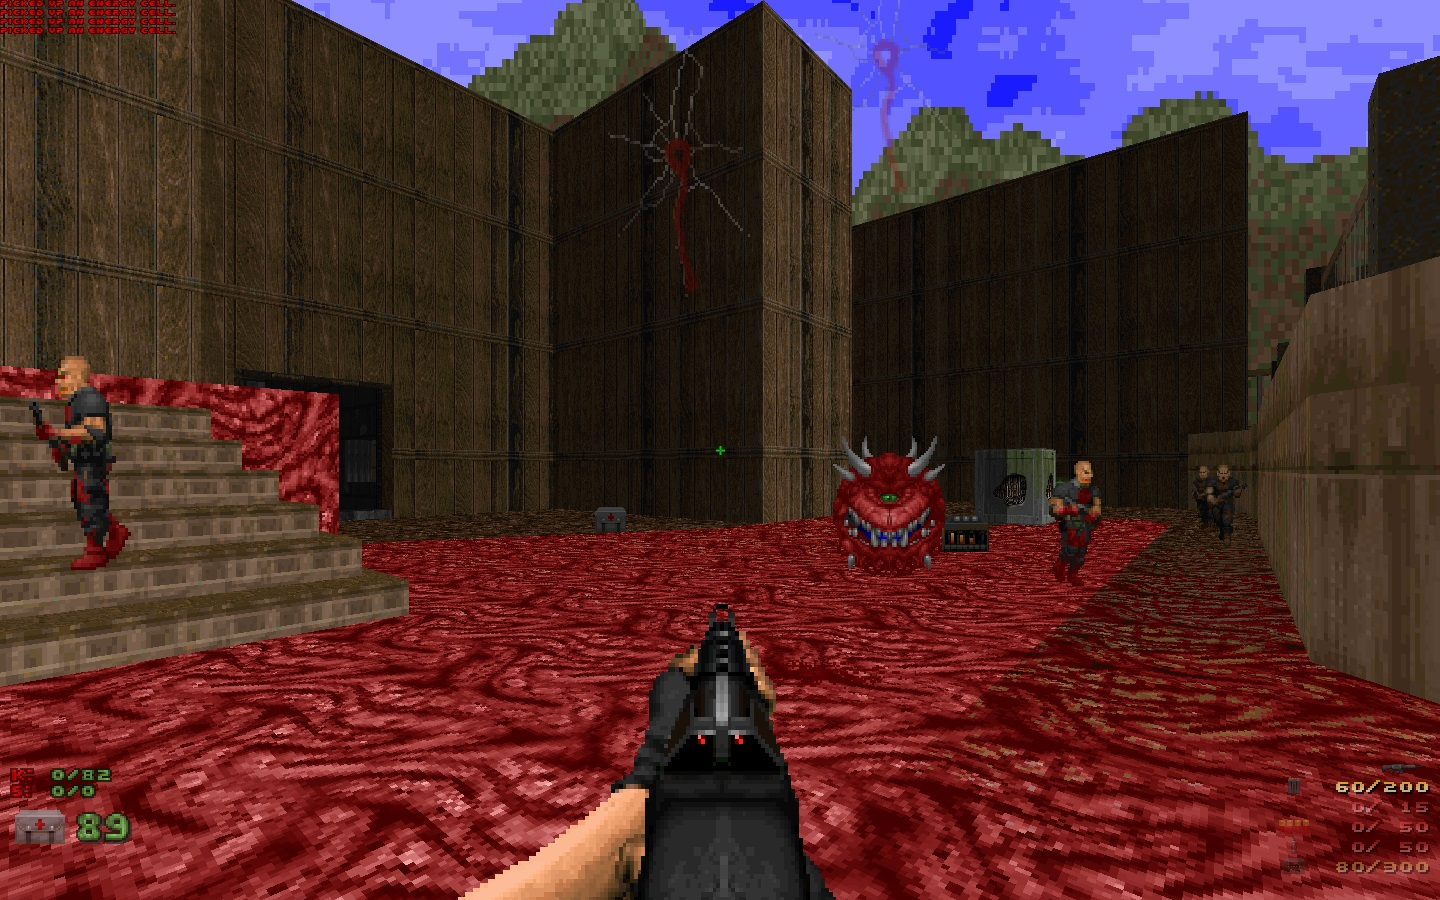 zdoom_2015-02-10_18-22-08-75 Doom Maps on quake 2 maps, mortal kombat 2 maps, simcity maps, arma 2 operation arrowhead maps, hexen maps, starcraft maps, minecraft maps, cities xl maps, twisted metal 3 maps, super smash bros maps, super mario kart maps, dungeon keeper 2 maps, day of defeat maps, dystopia maps, enemy territory maps, call of duty maps, dino crisis 2 maps, dark forces maps, star wars kotor maps,